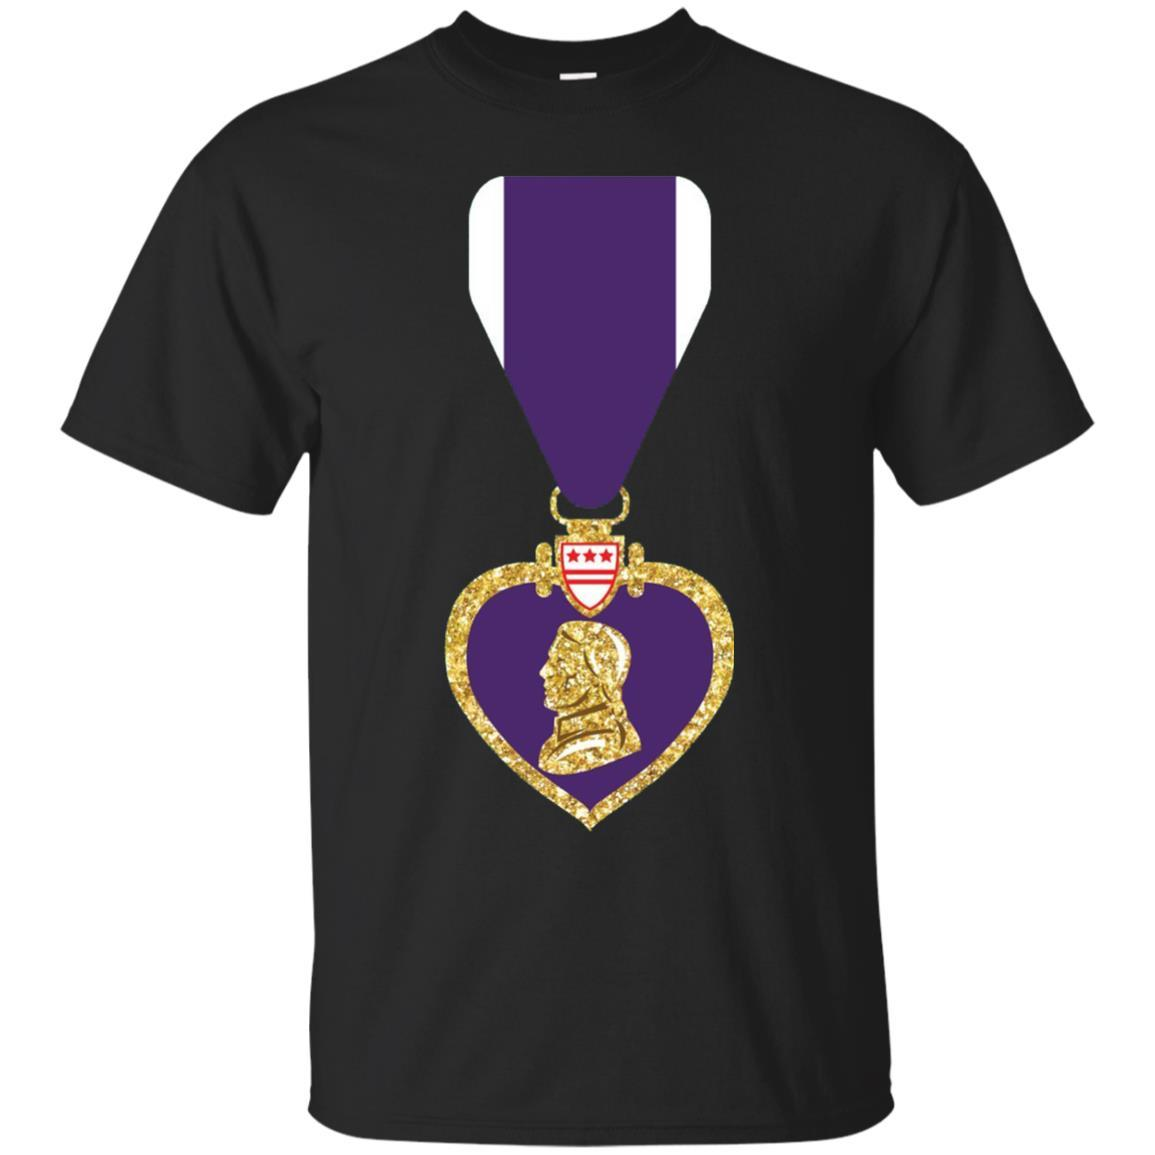 Purple Heart T-Shirt US Military Decoration Veterans Medal